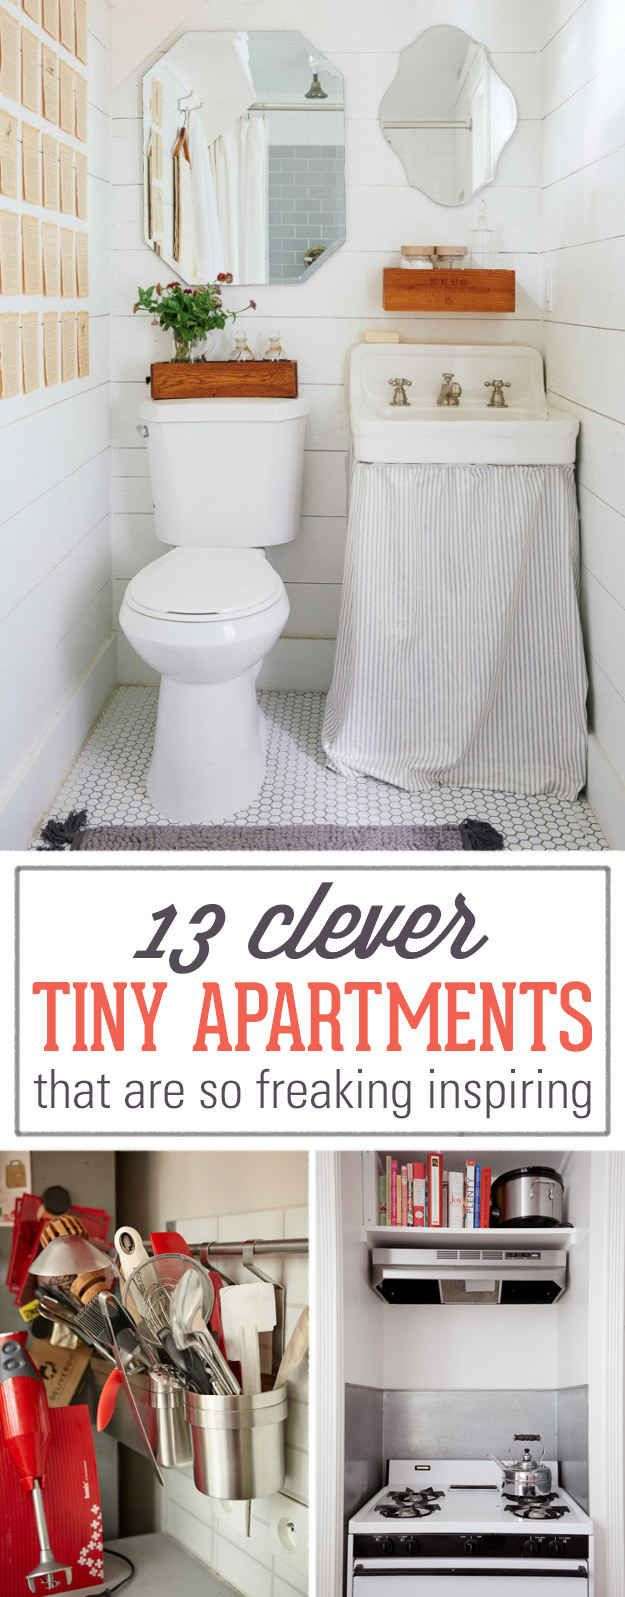 Small apartment bathroom ideas - 13 Clever Tiny Apartments That Are So Freaking Inspiring